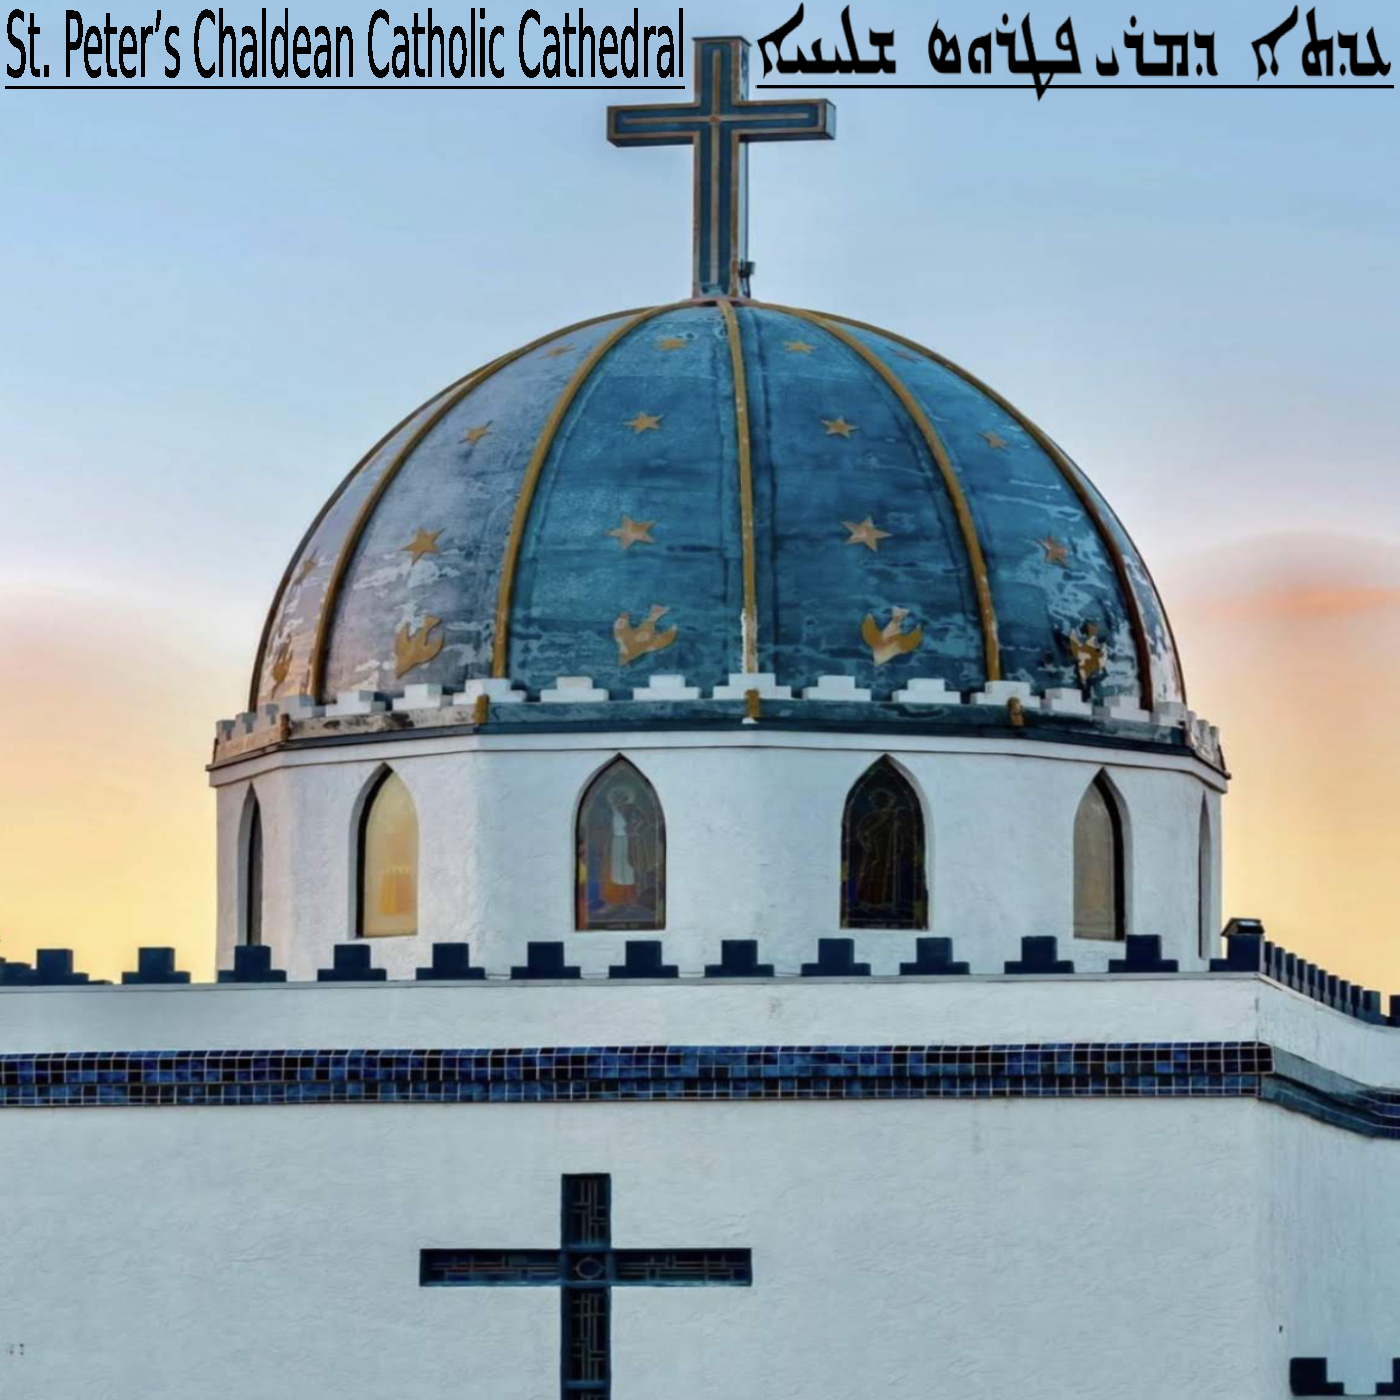 St. Peter's Chaldean Diocese